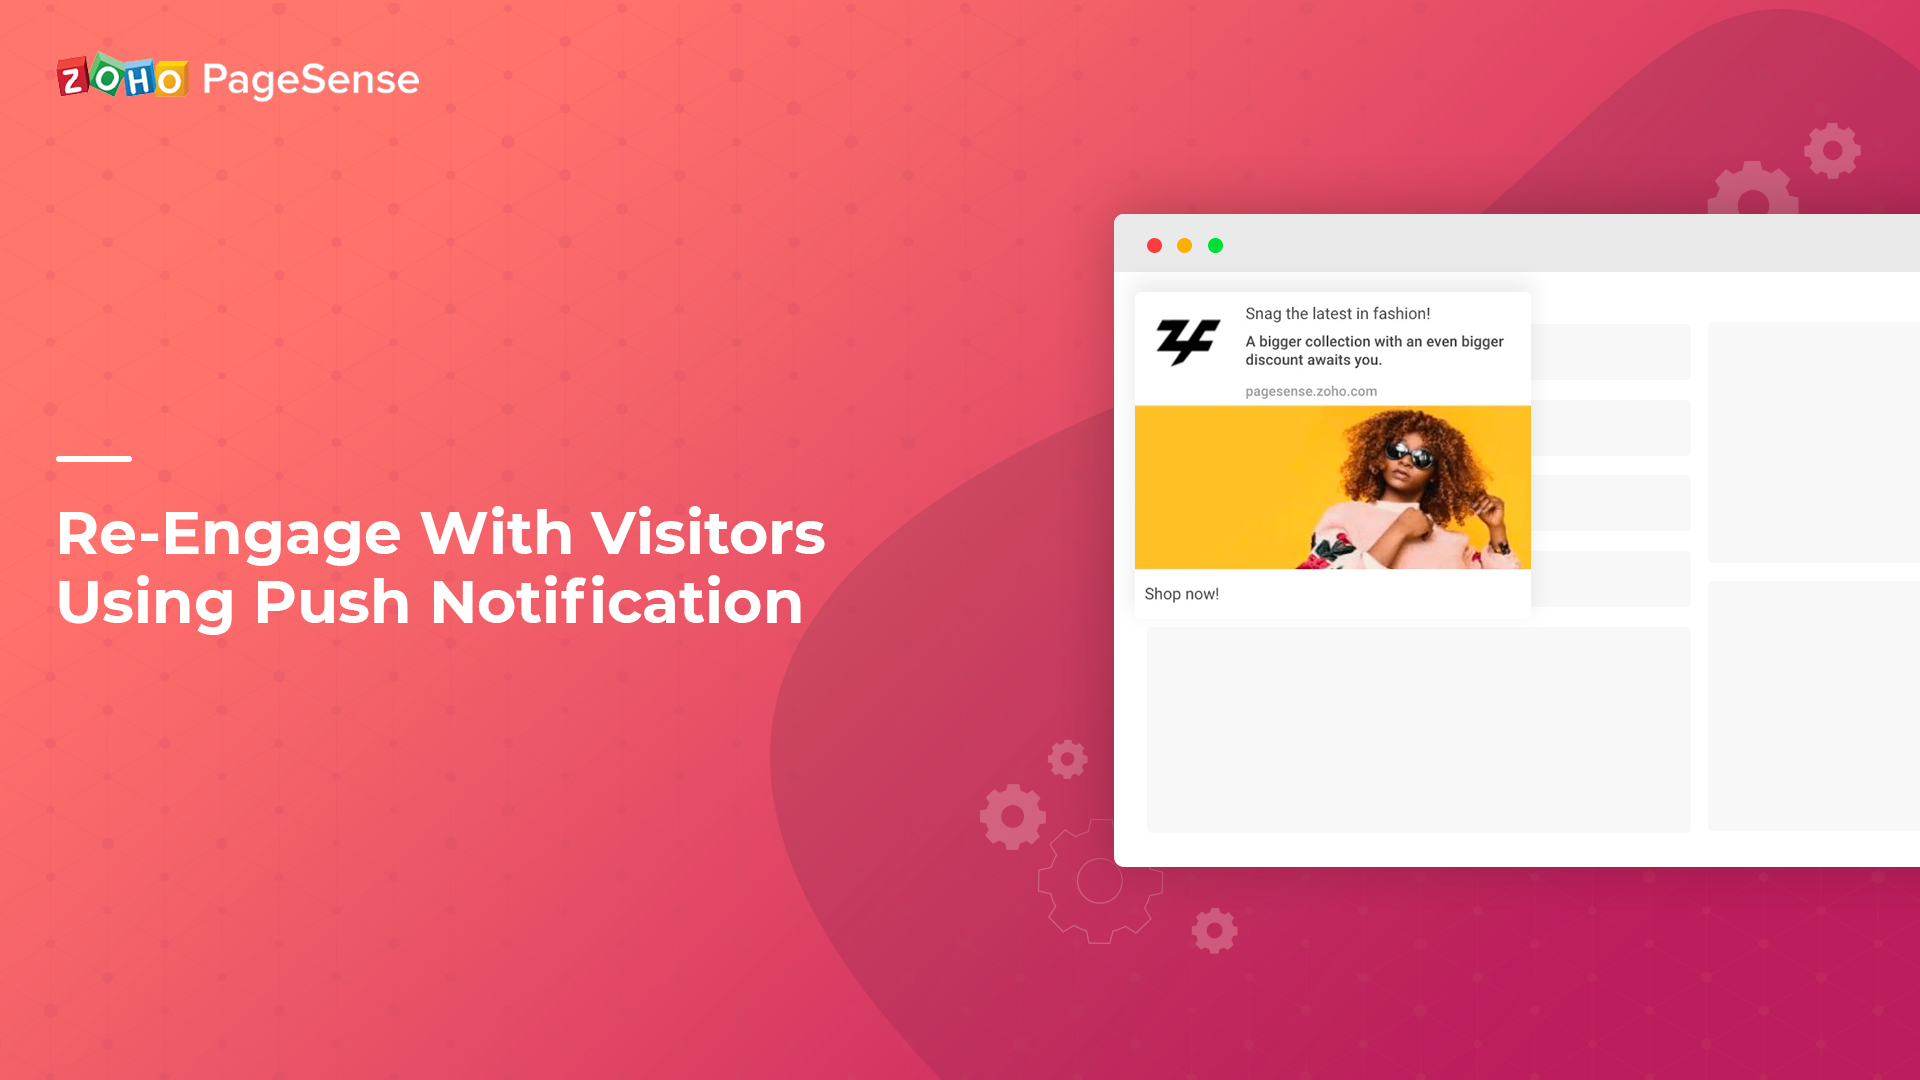 Re-Engage With Visitors Using Push Notification